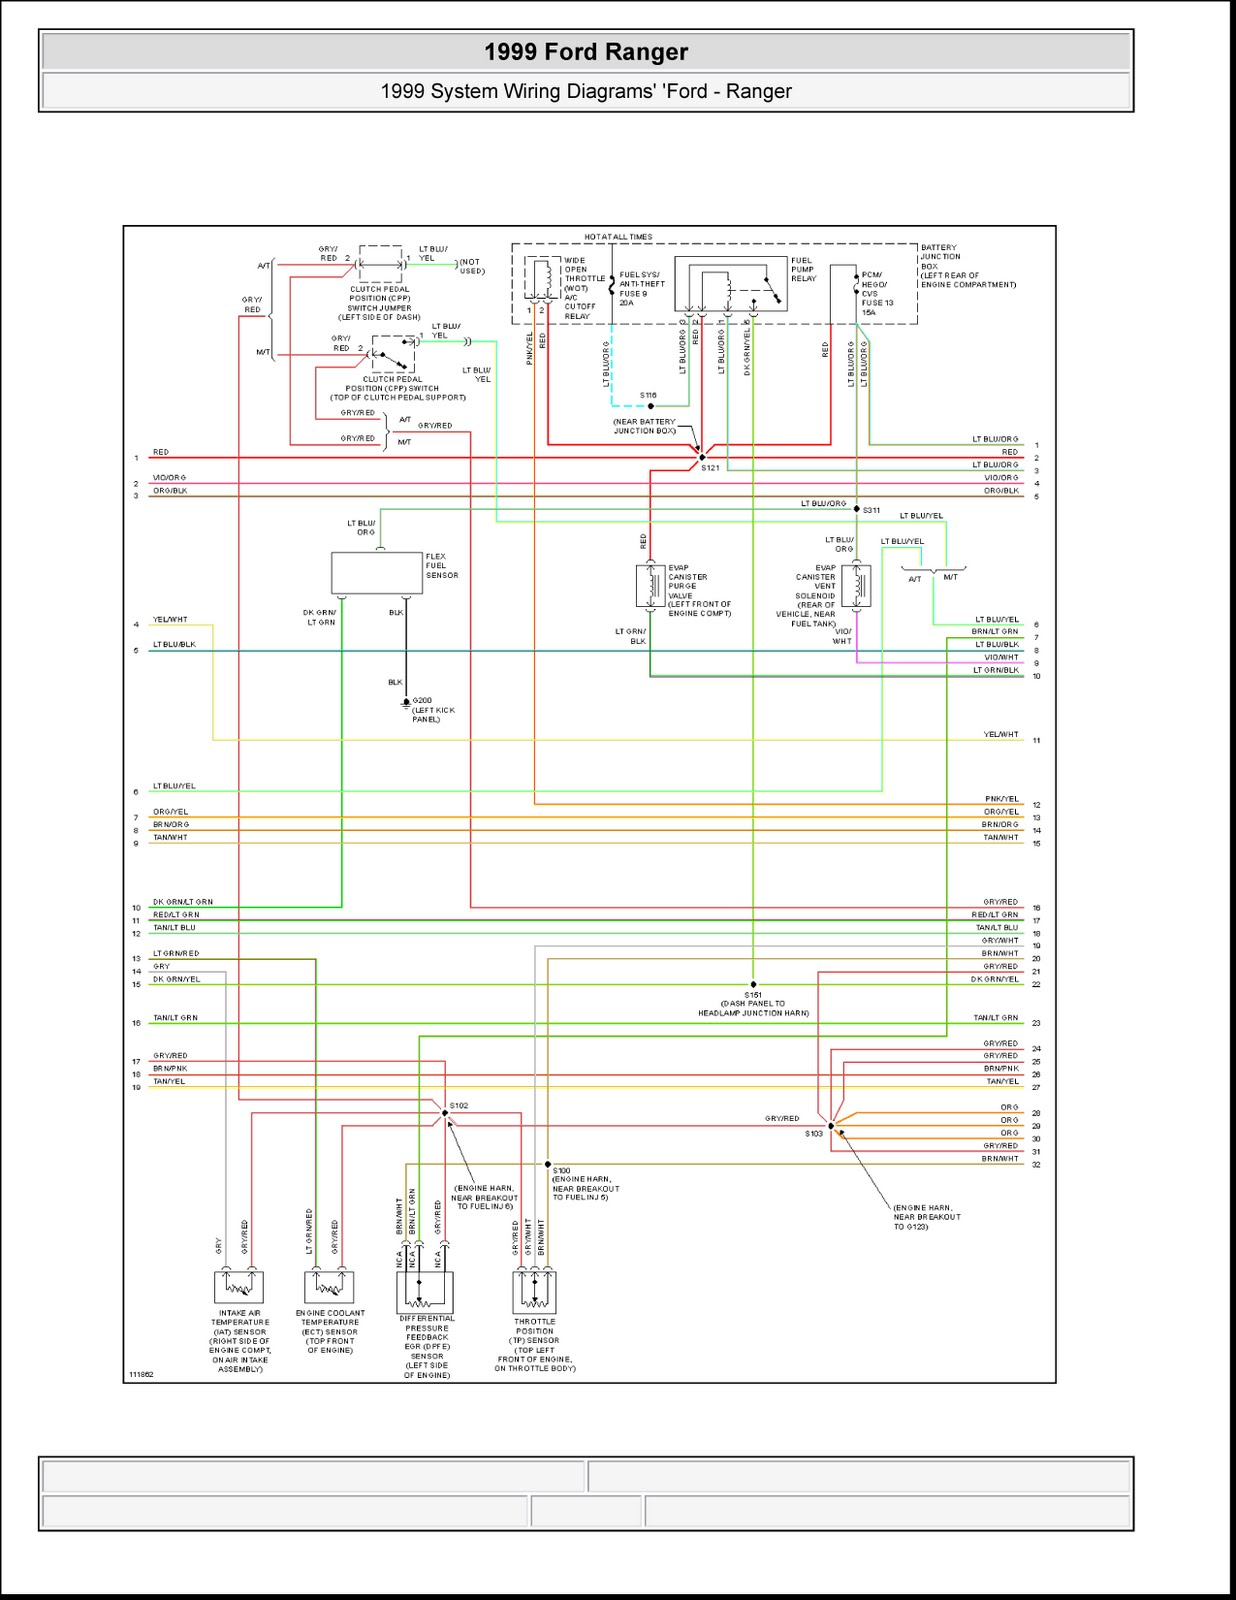 1999 Ford Ranger System Wiring Diagrams 4 Images Wire Diagram